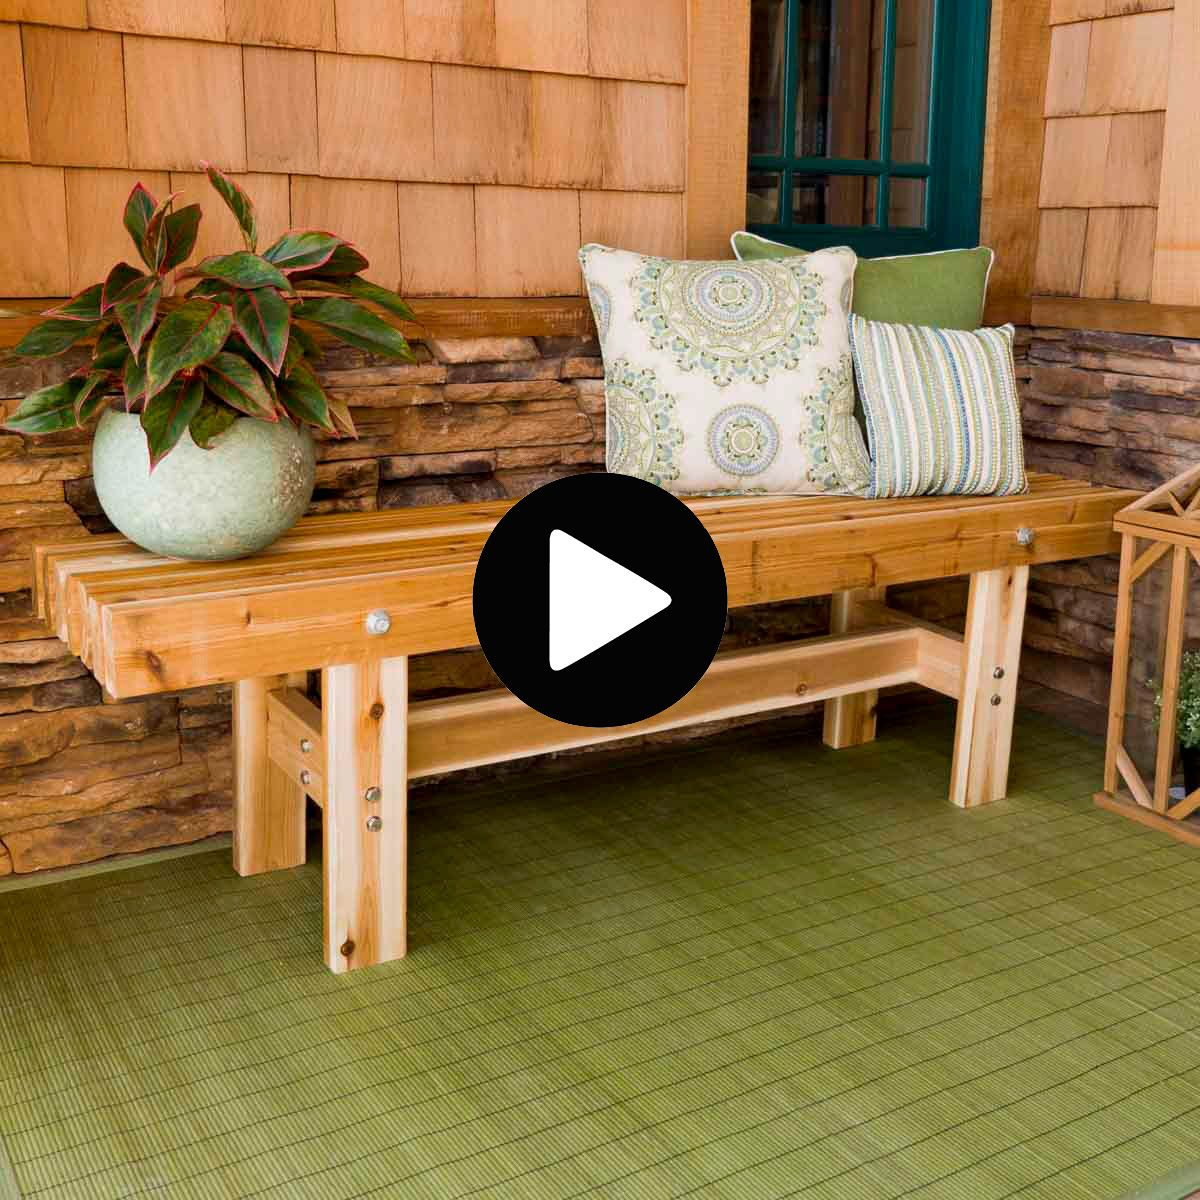 Backyard Ideas for Creating the Ultimate Outdoor Space